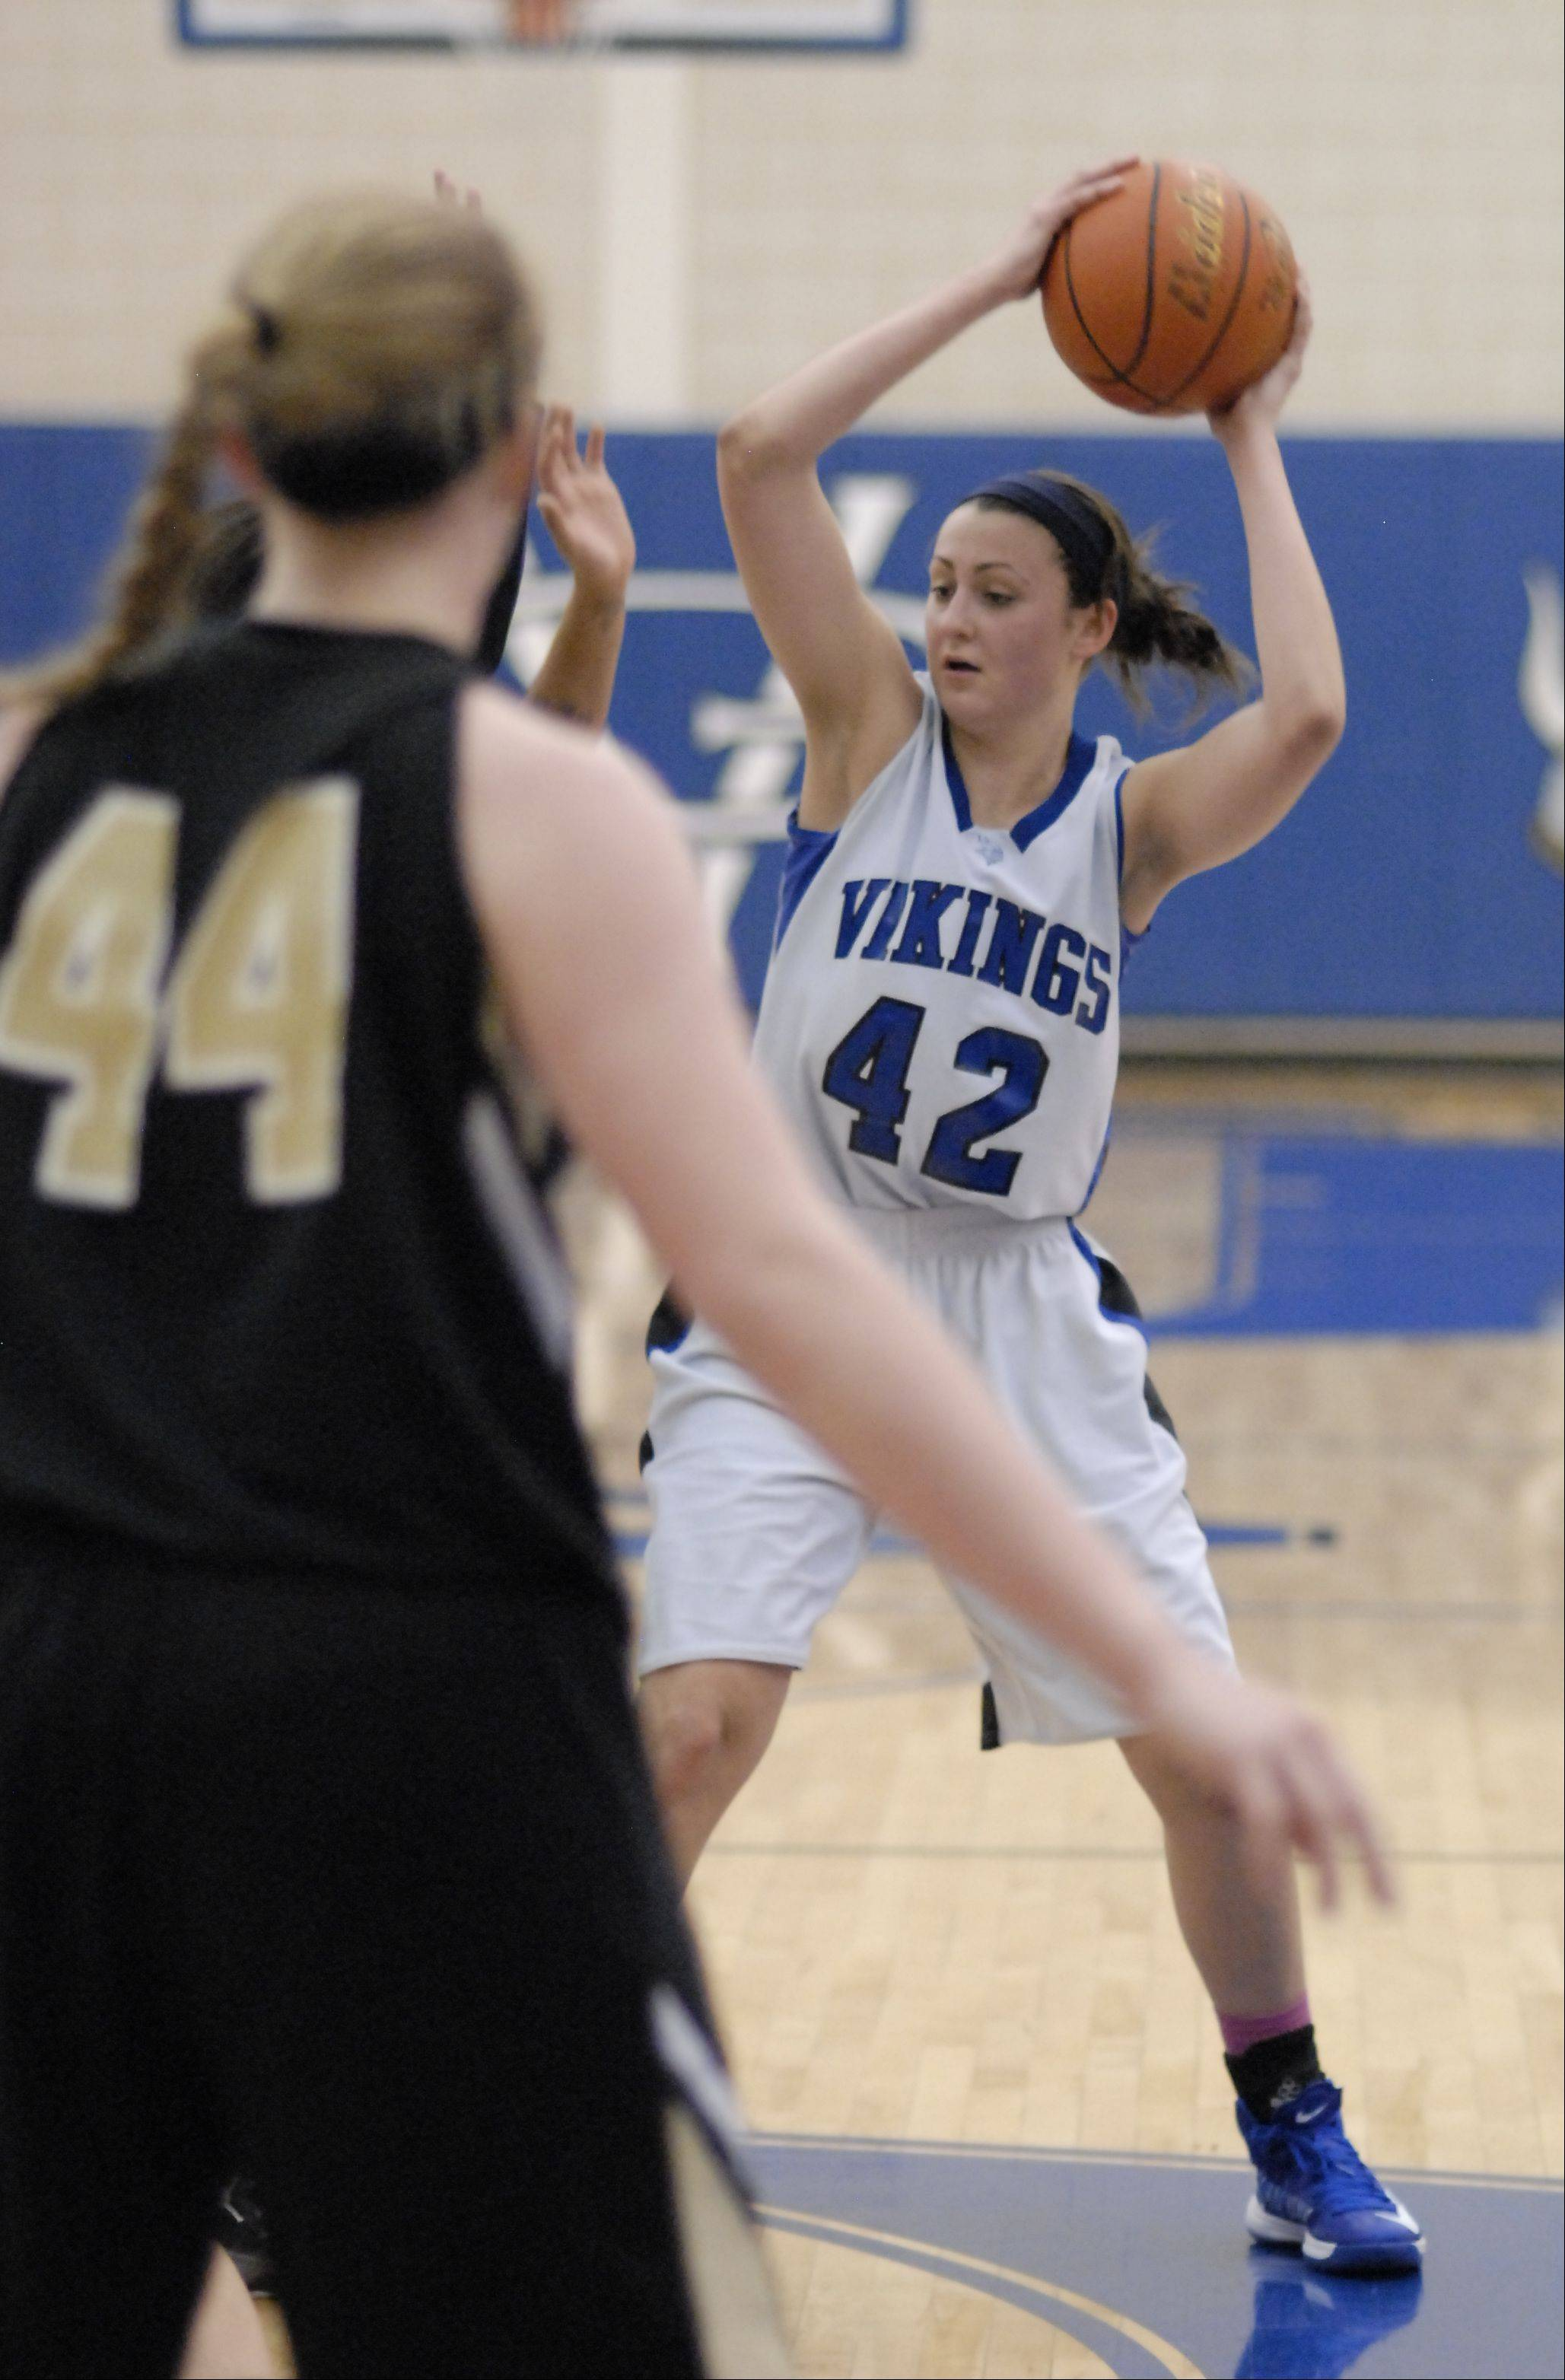 Images from the Streamwood vs. Geneva girls basketball game Wednesday, December 12, 2012.